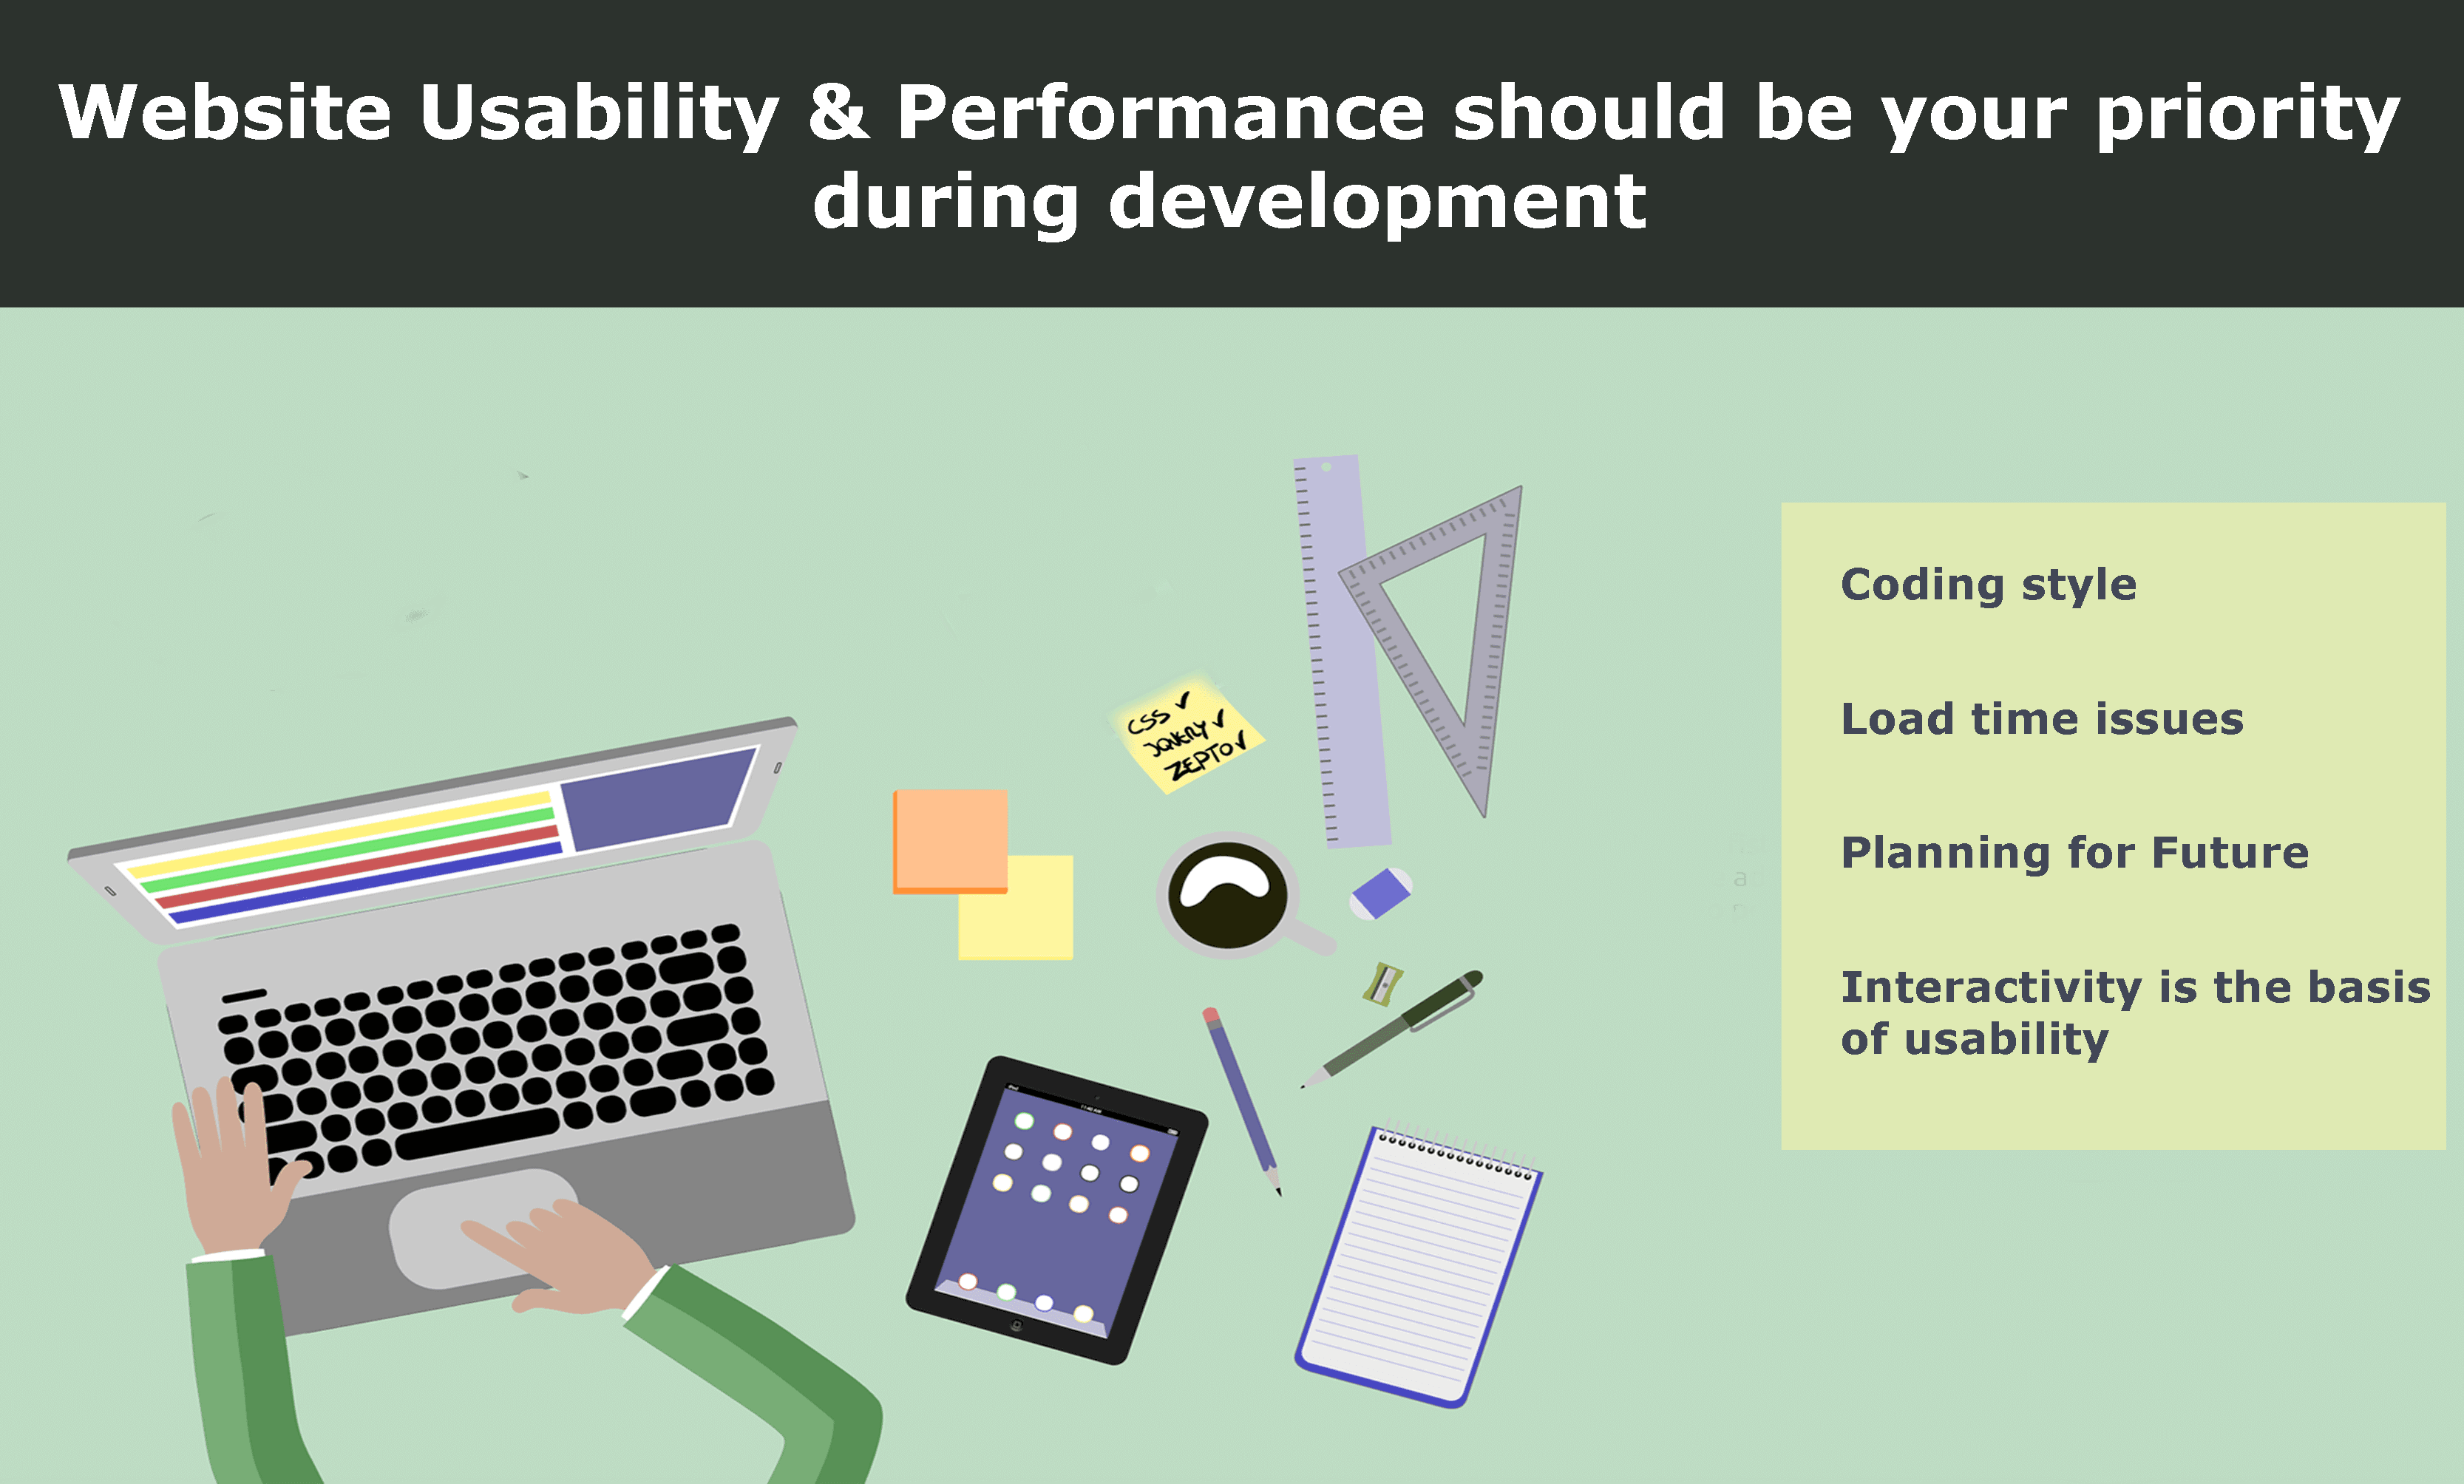 Website usability and performance should be your priority during development - Image 1